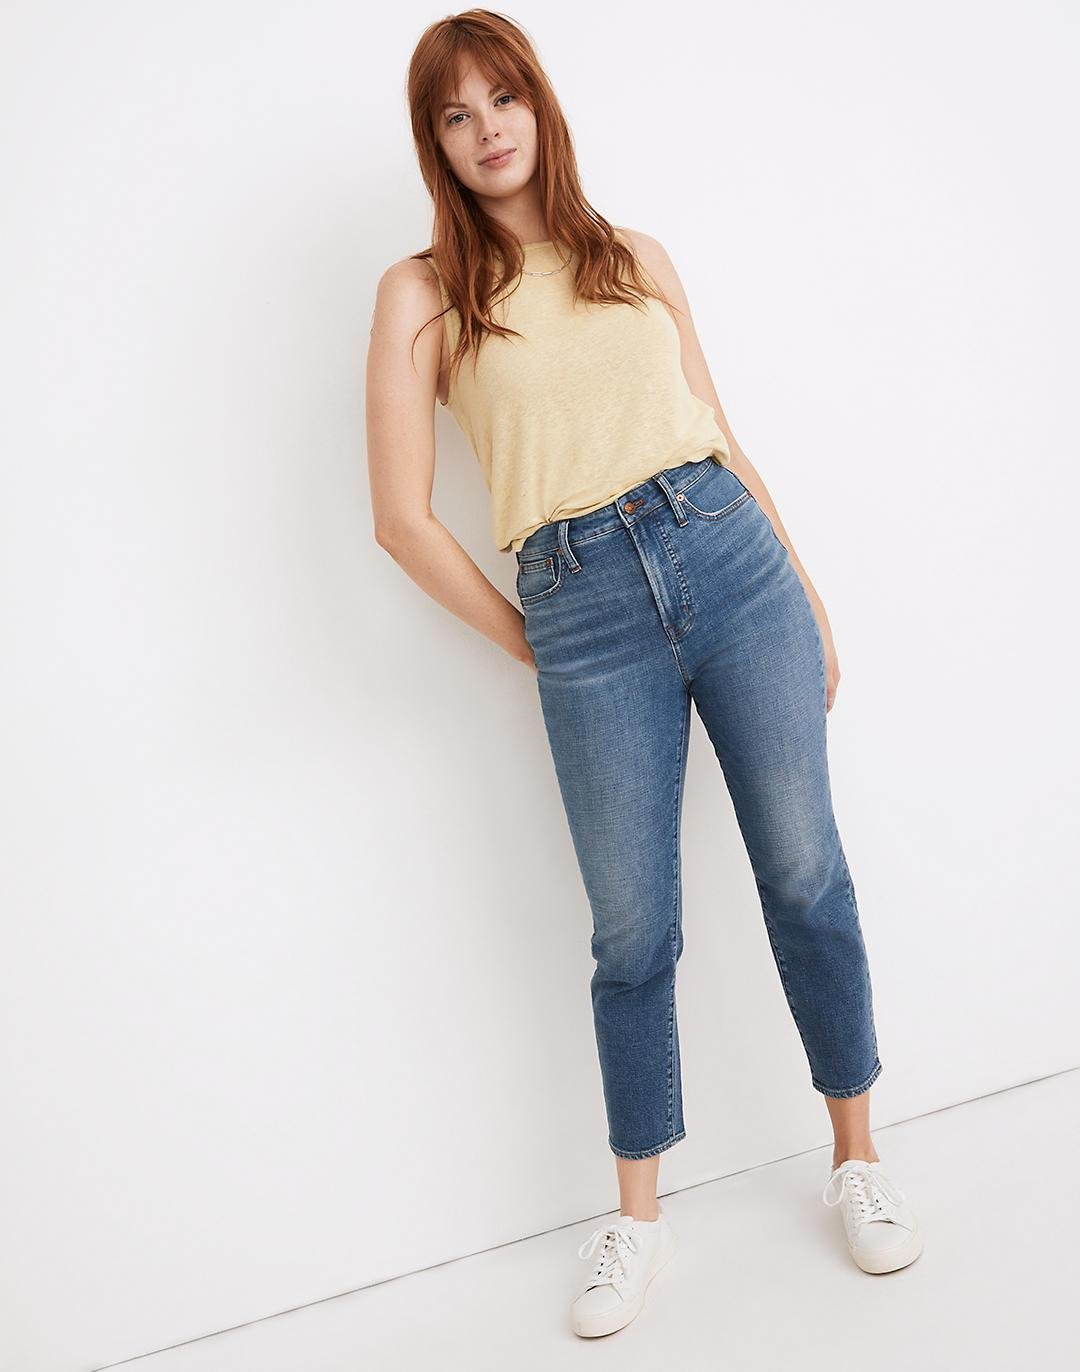 The Curvy Perfect Vintage Crop Jean in Sandford Wash: Summerweight Edition